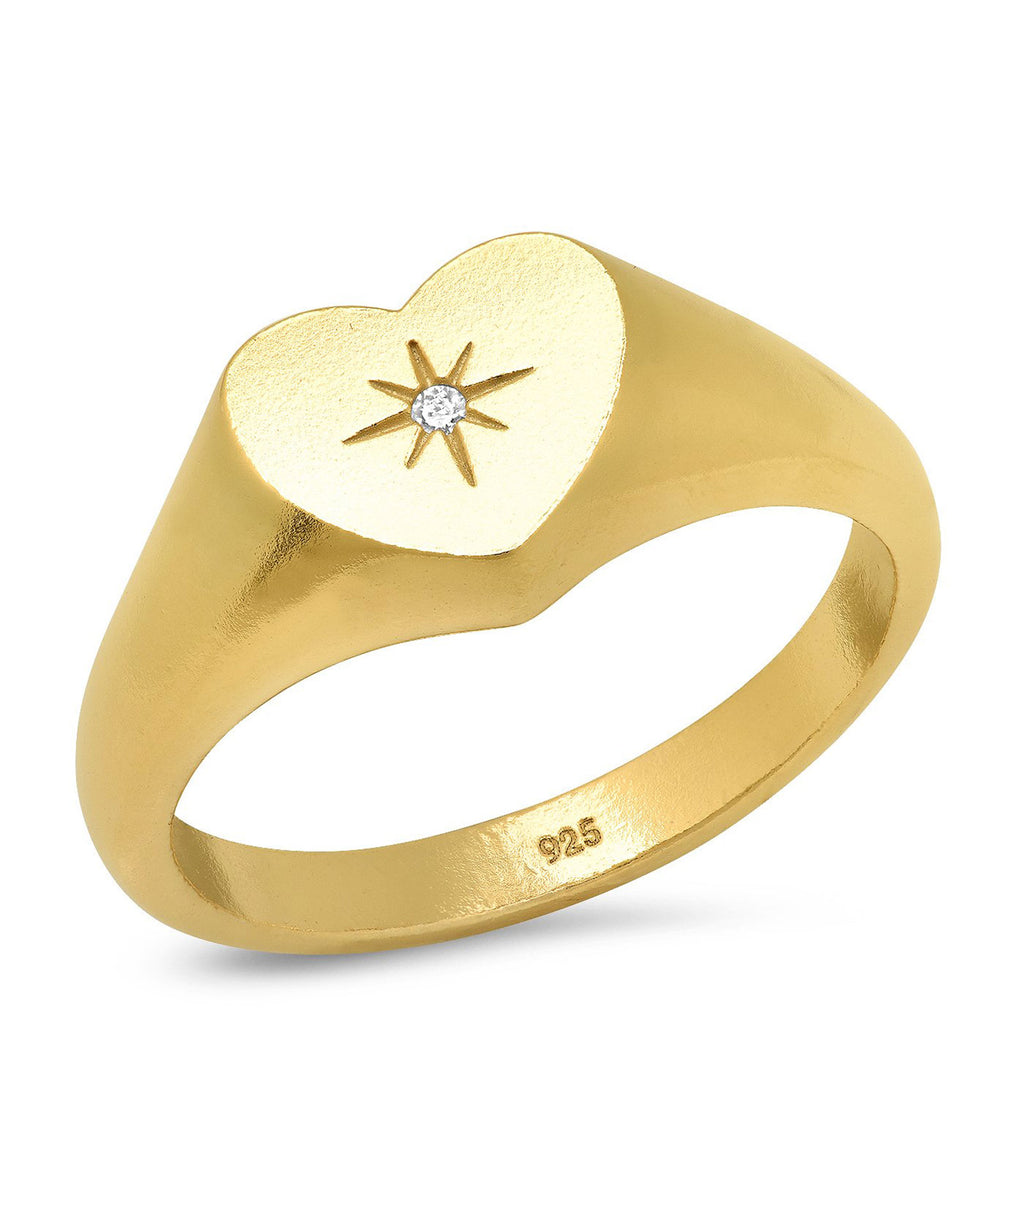 TAI Gold Heart Ring